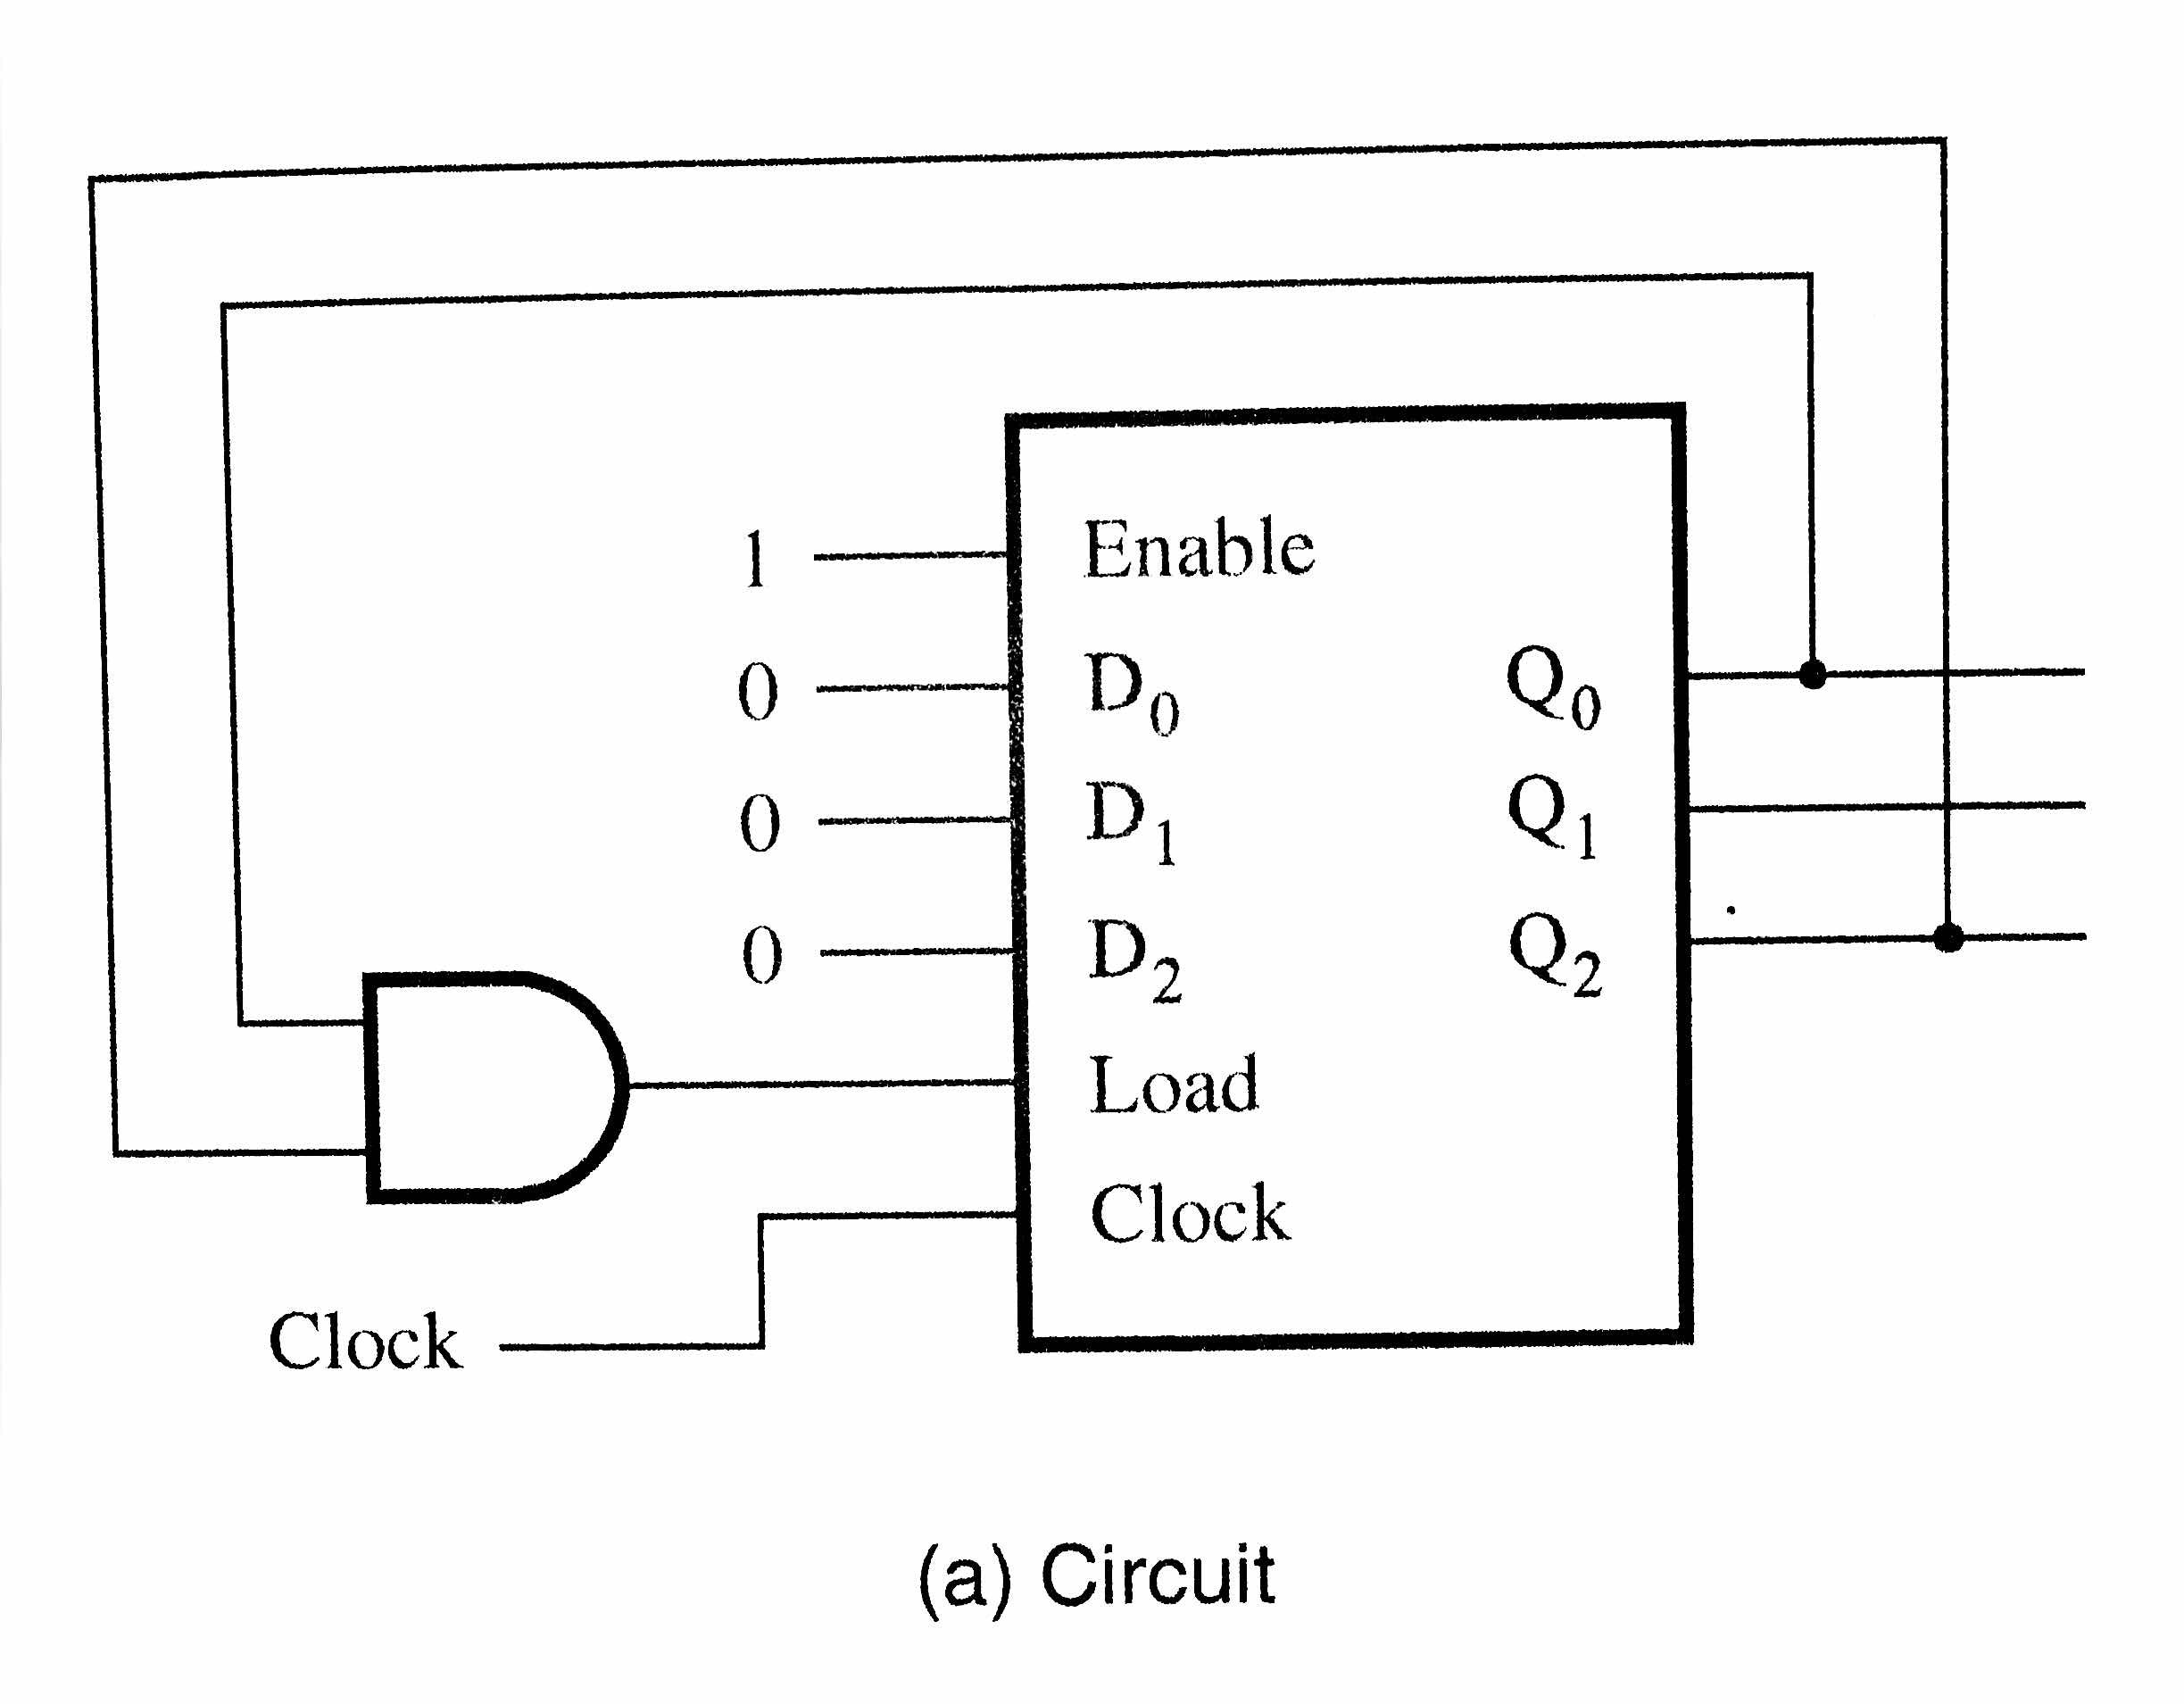 Enable Qo 0 0 0 Dn Load Clock Clock (a) Circuit